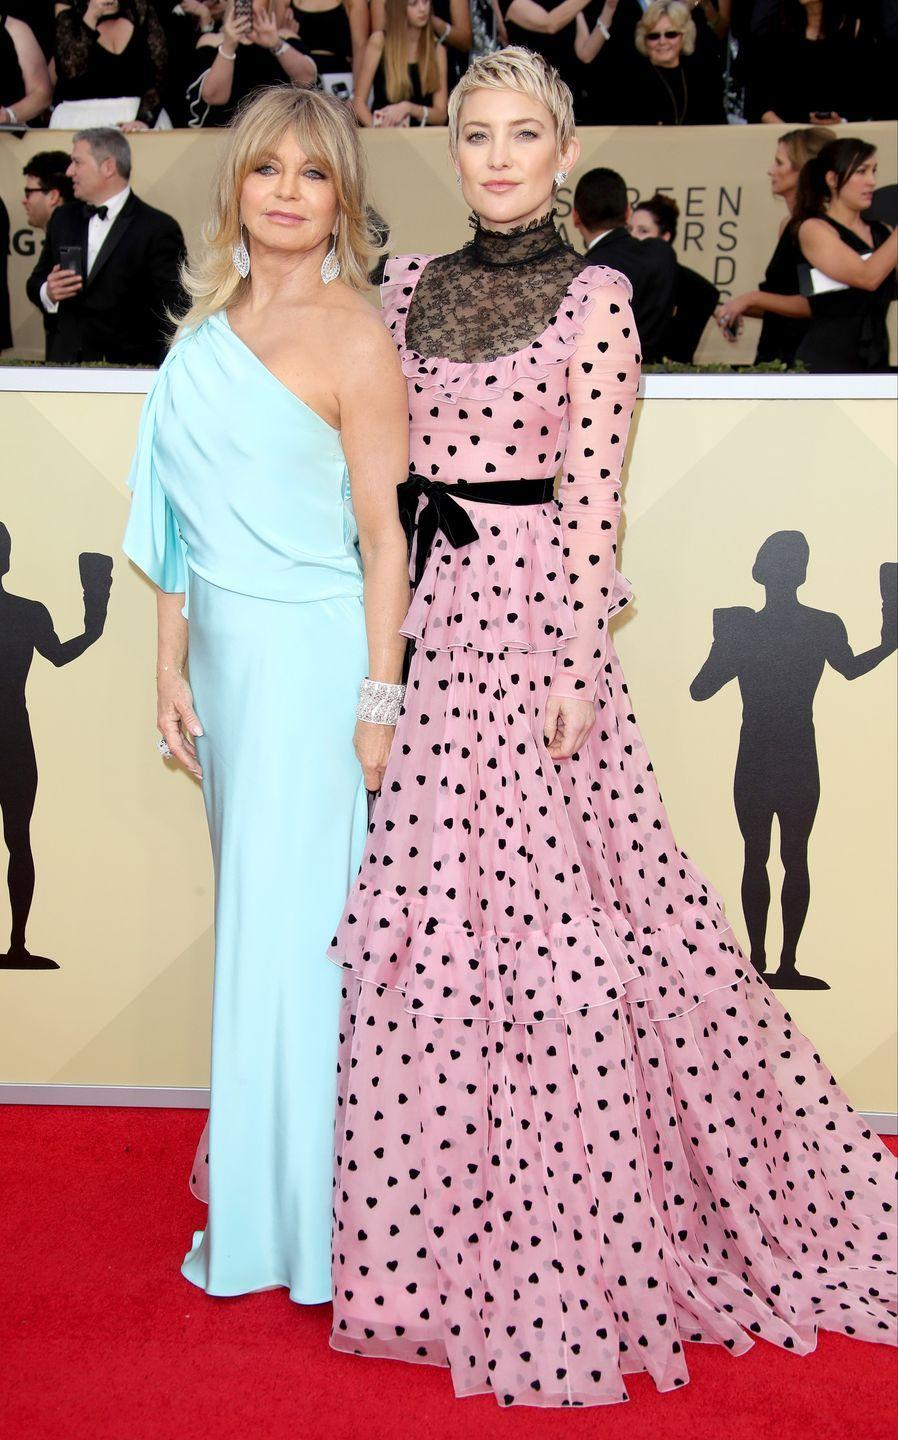 <p>Yep! Superstar Goldie Hawn is the mother of former <em>WH </em>cover star Kate Hudson. Together they make quite the photogenic pair. </p>